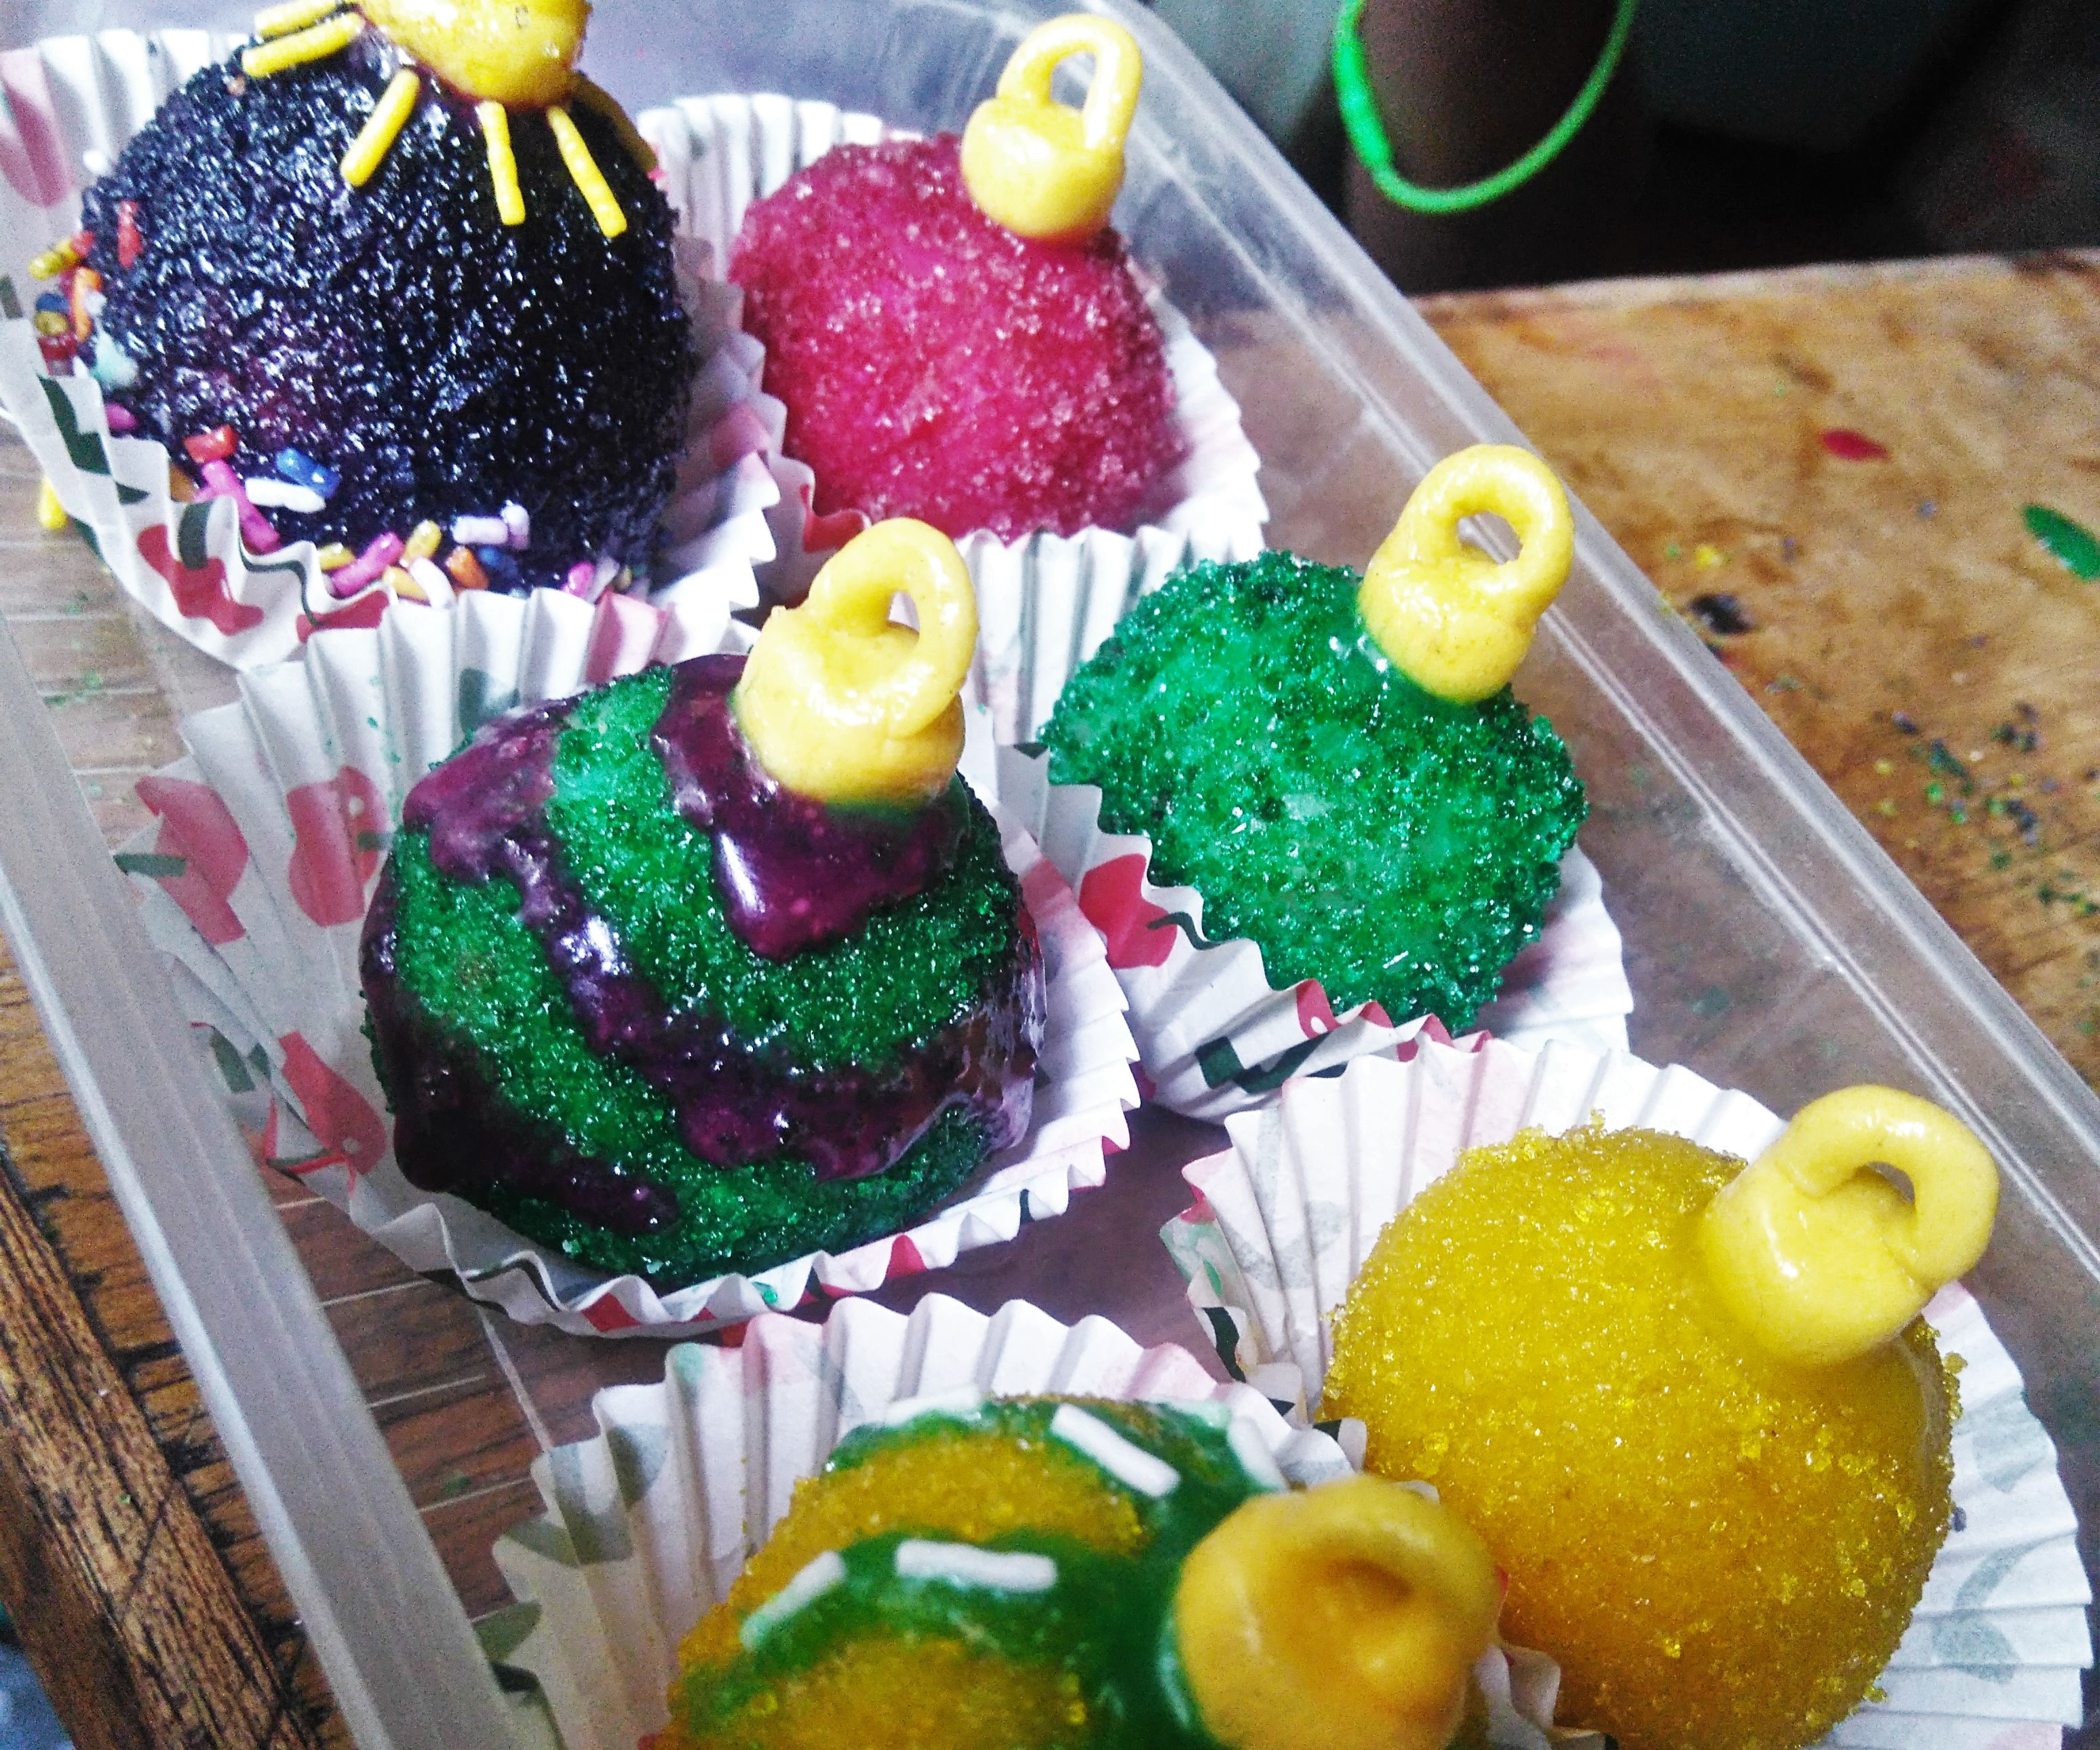 Ornaments Cake balls, with DIY edible glitters!!!